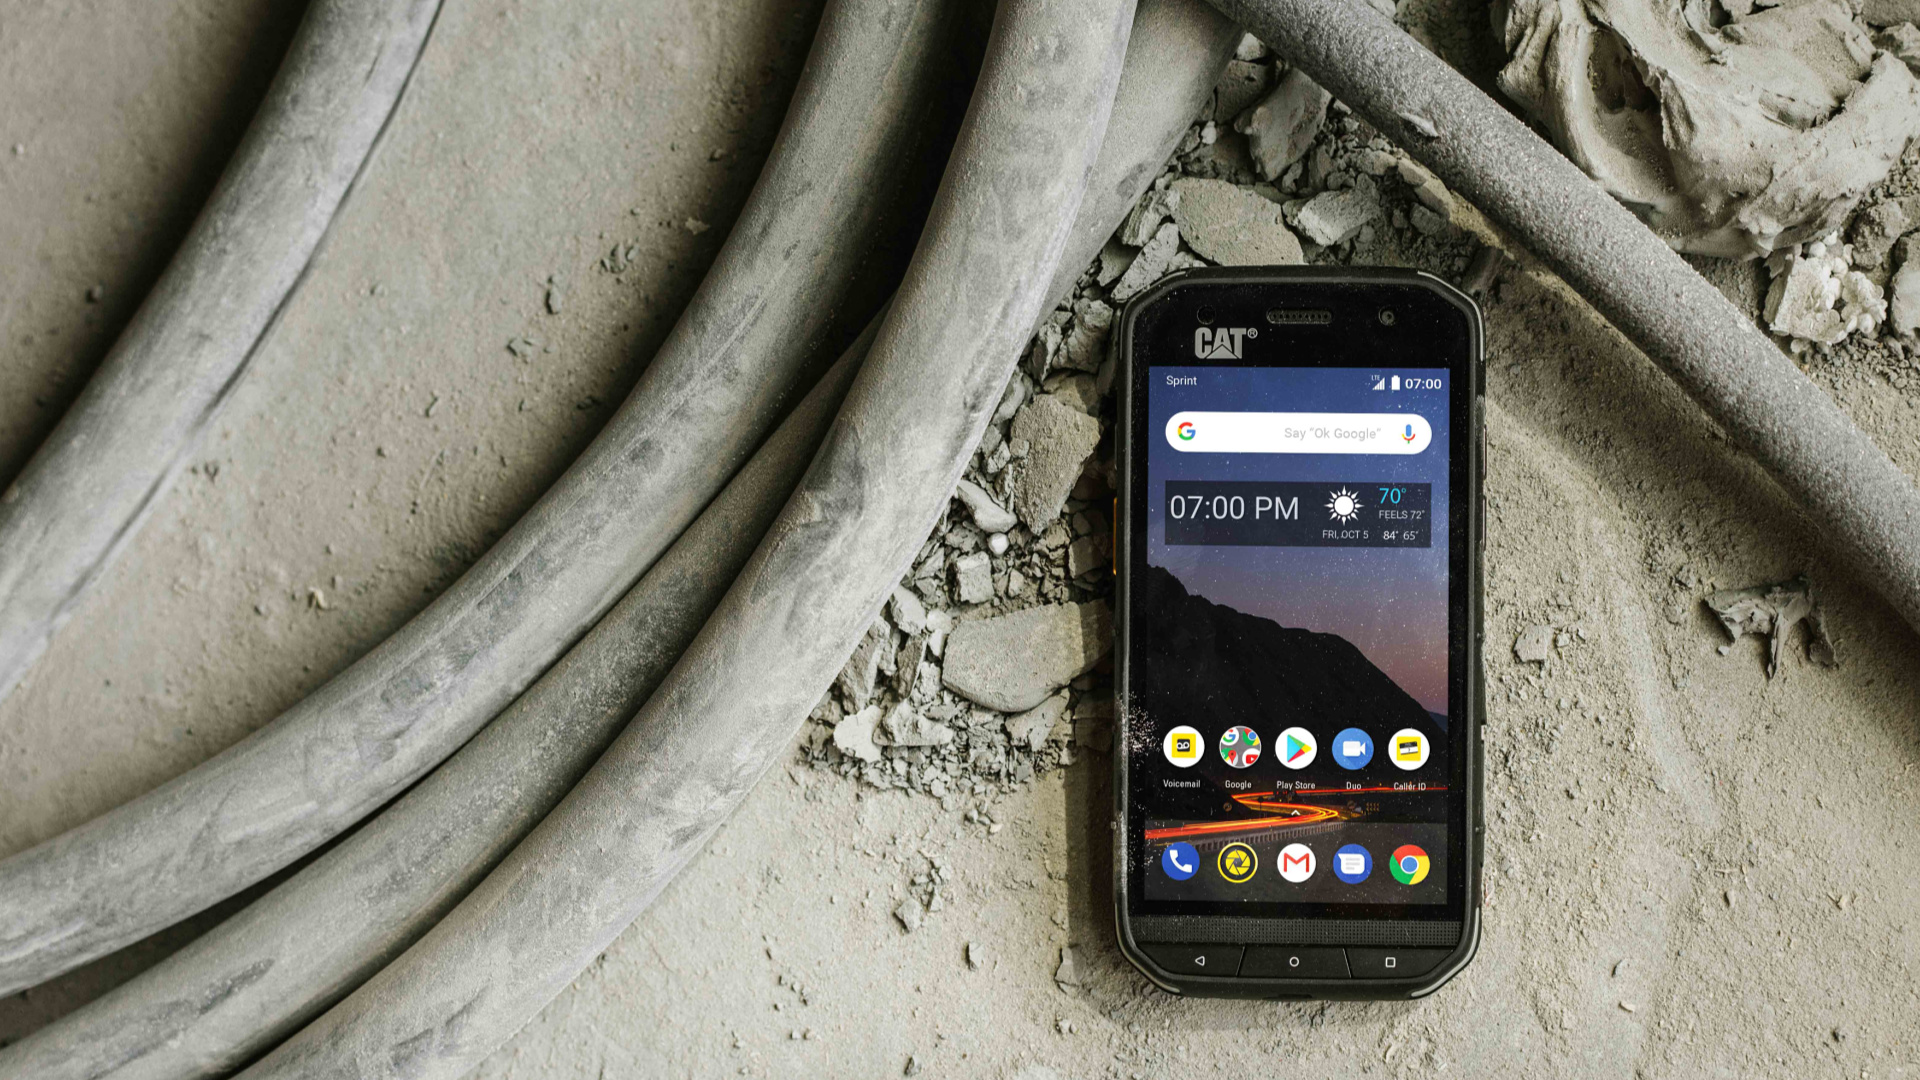 Sprint dials up rugged Cat S48c phone for $20 per month